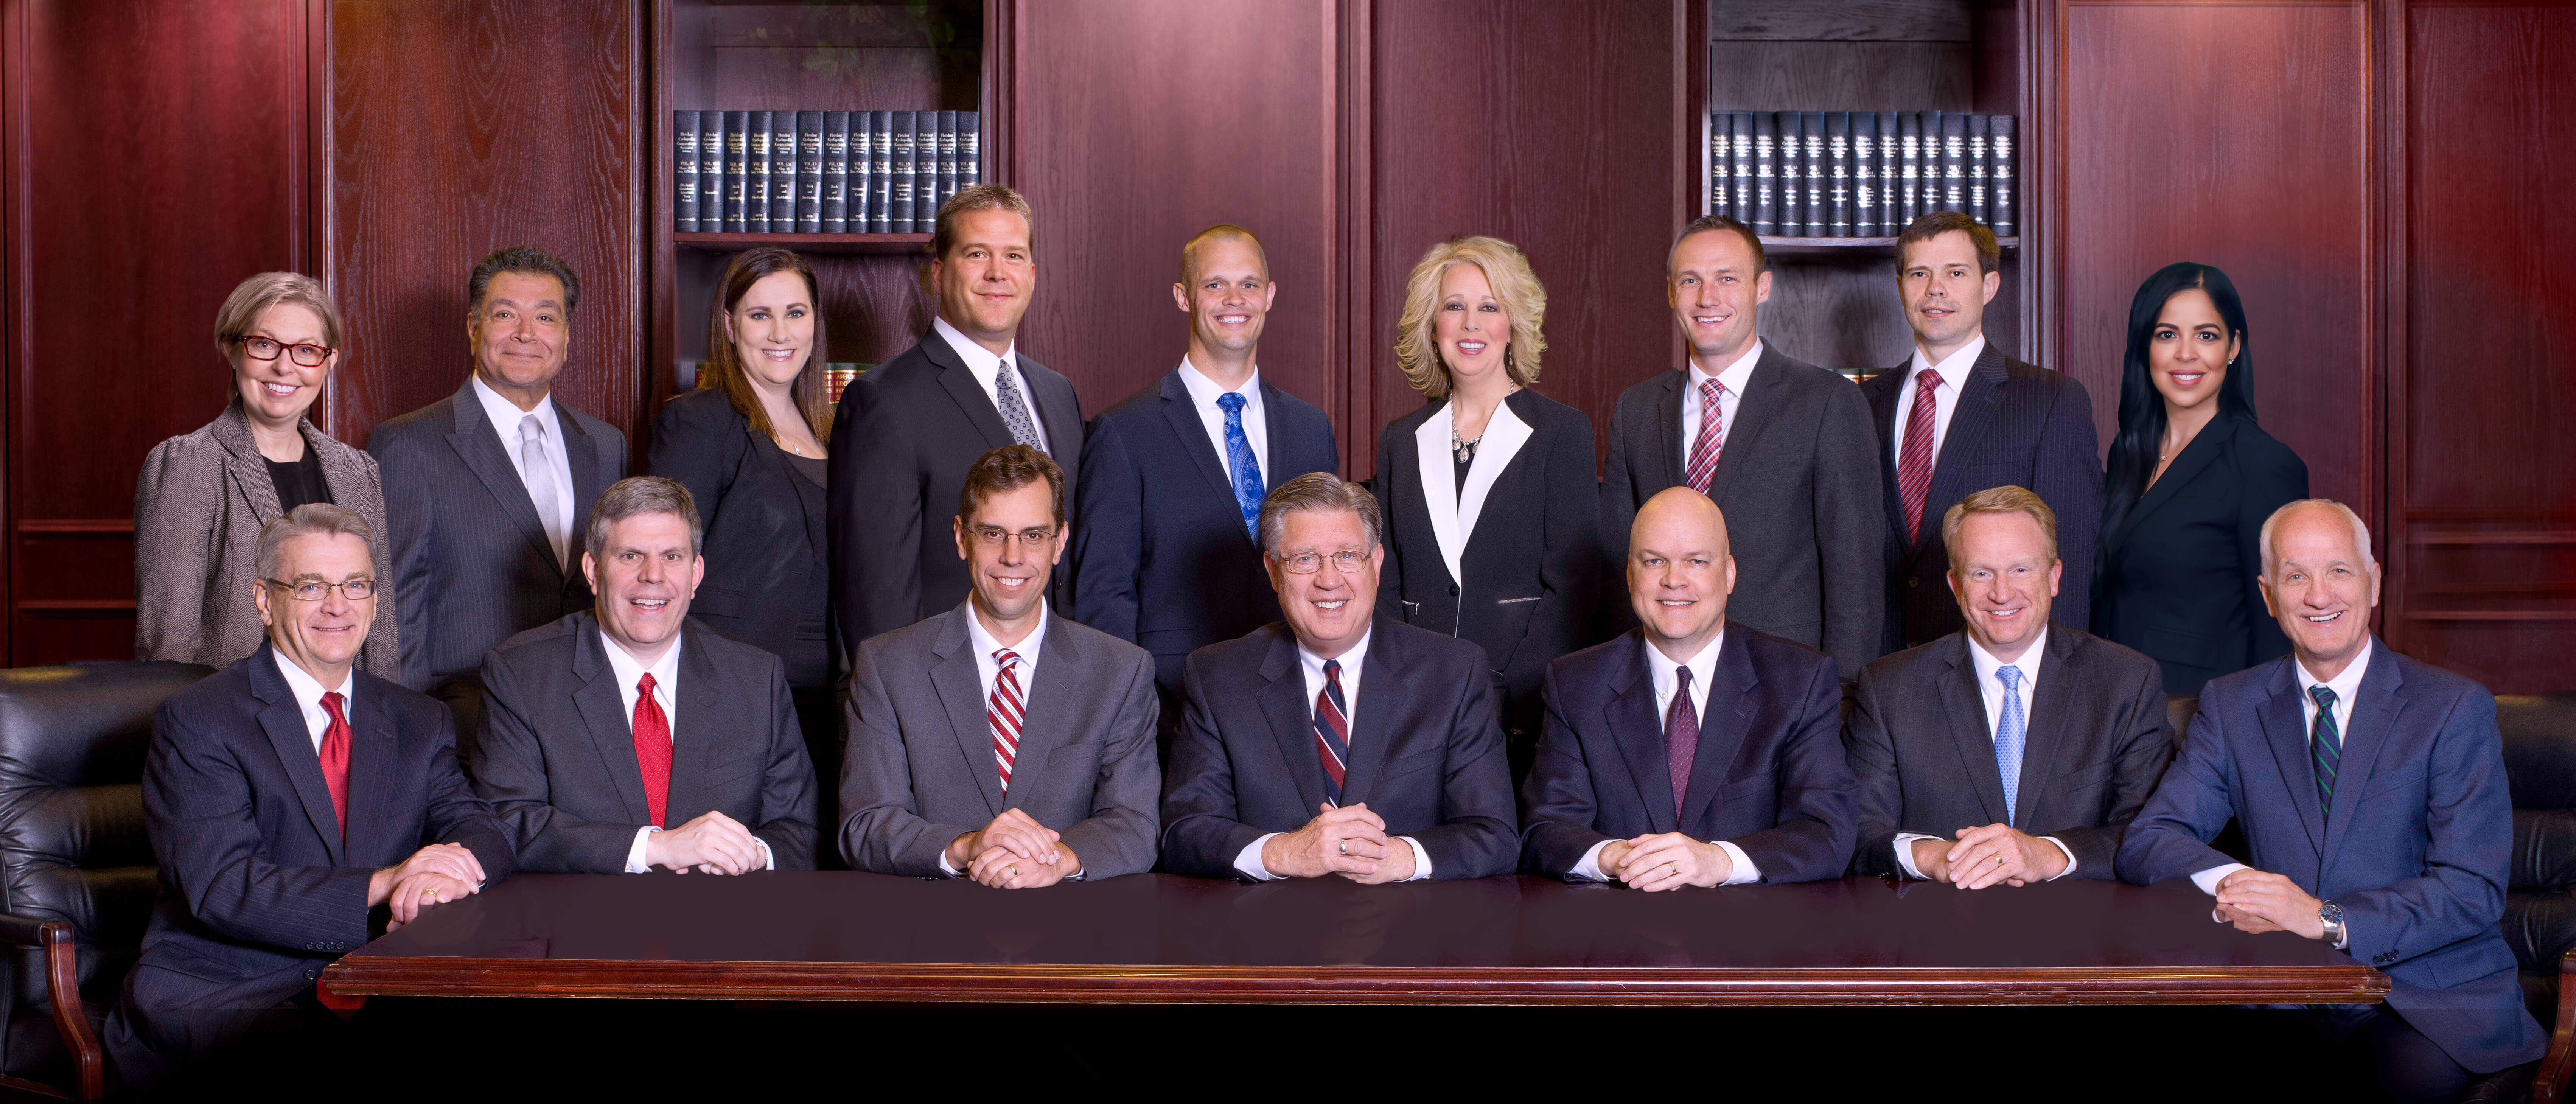 Provo Lawyers - Fillmore Spencer Law | Provo Law Firm Since 1994